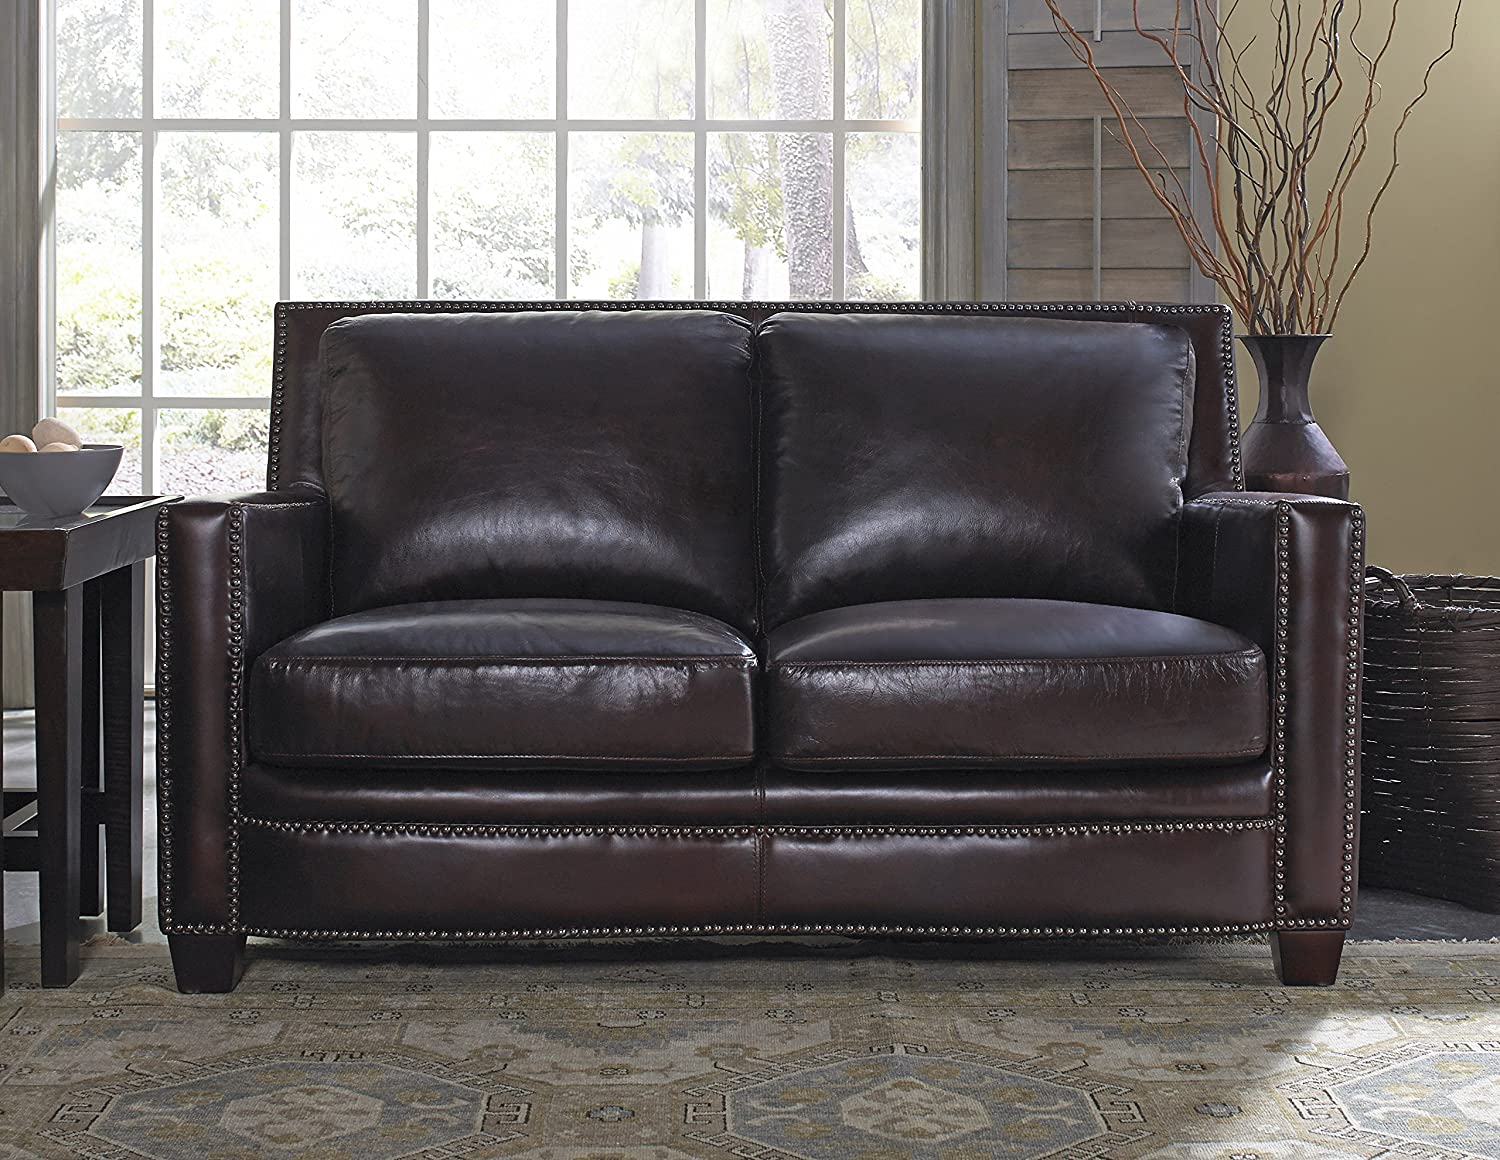 Lazzaro Simplicity Loveseat - 60 by 40 by 34-Inch - Cranberry